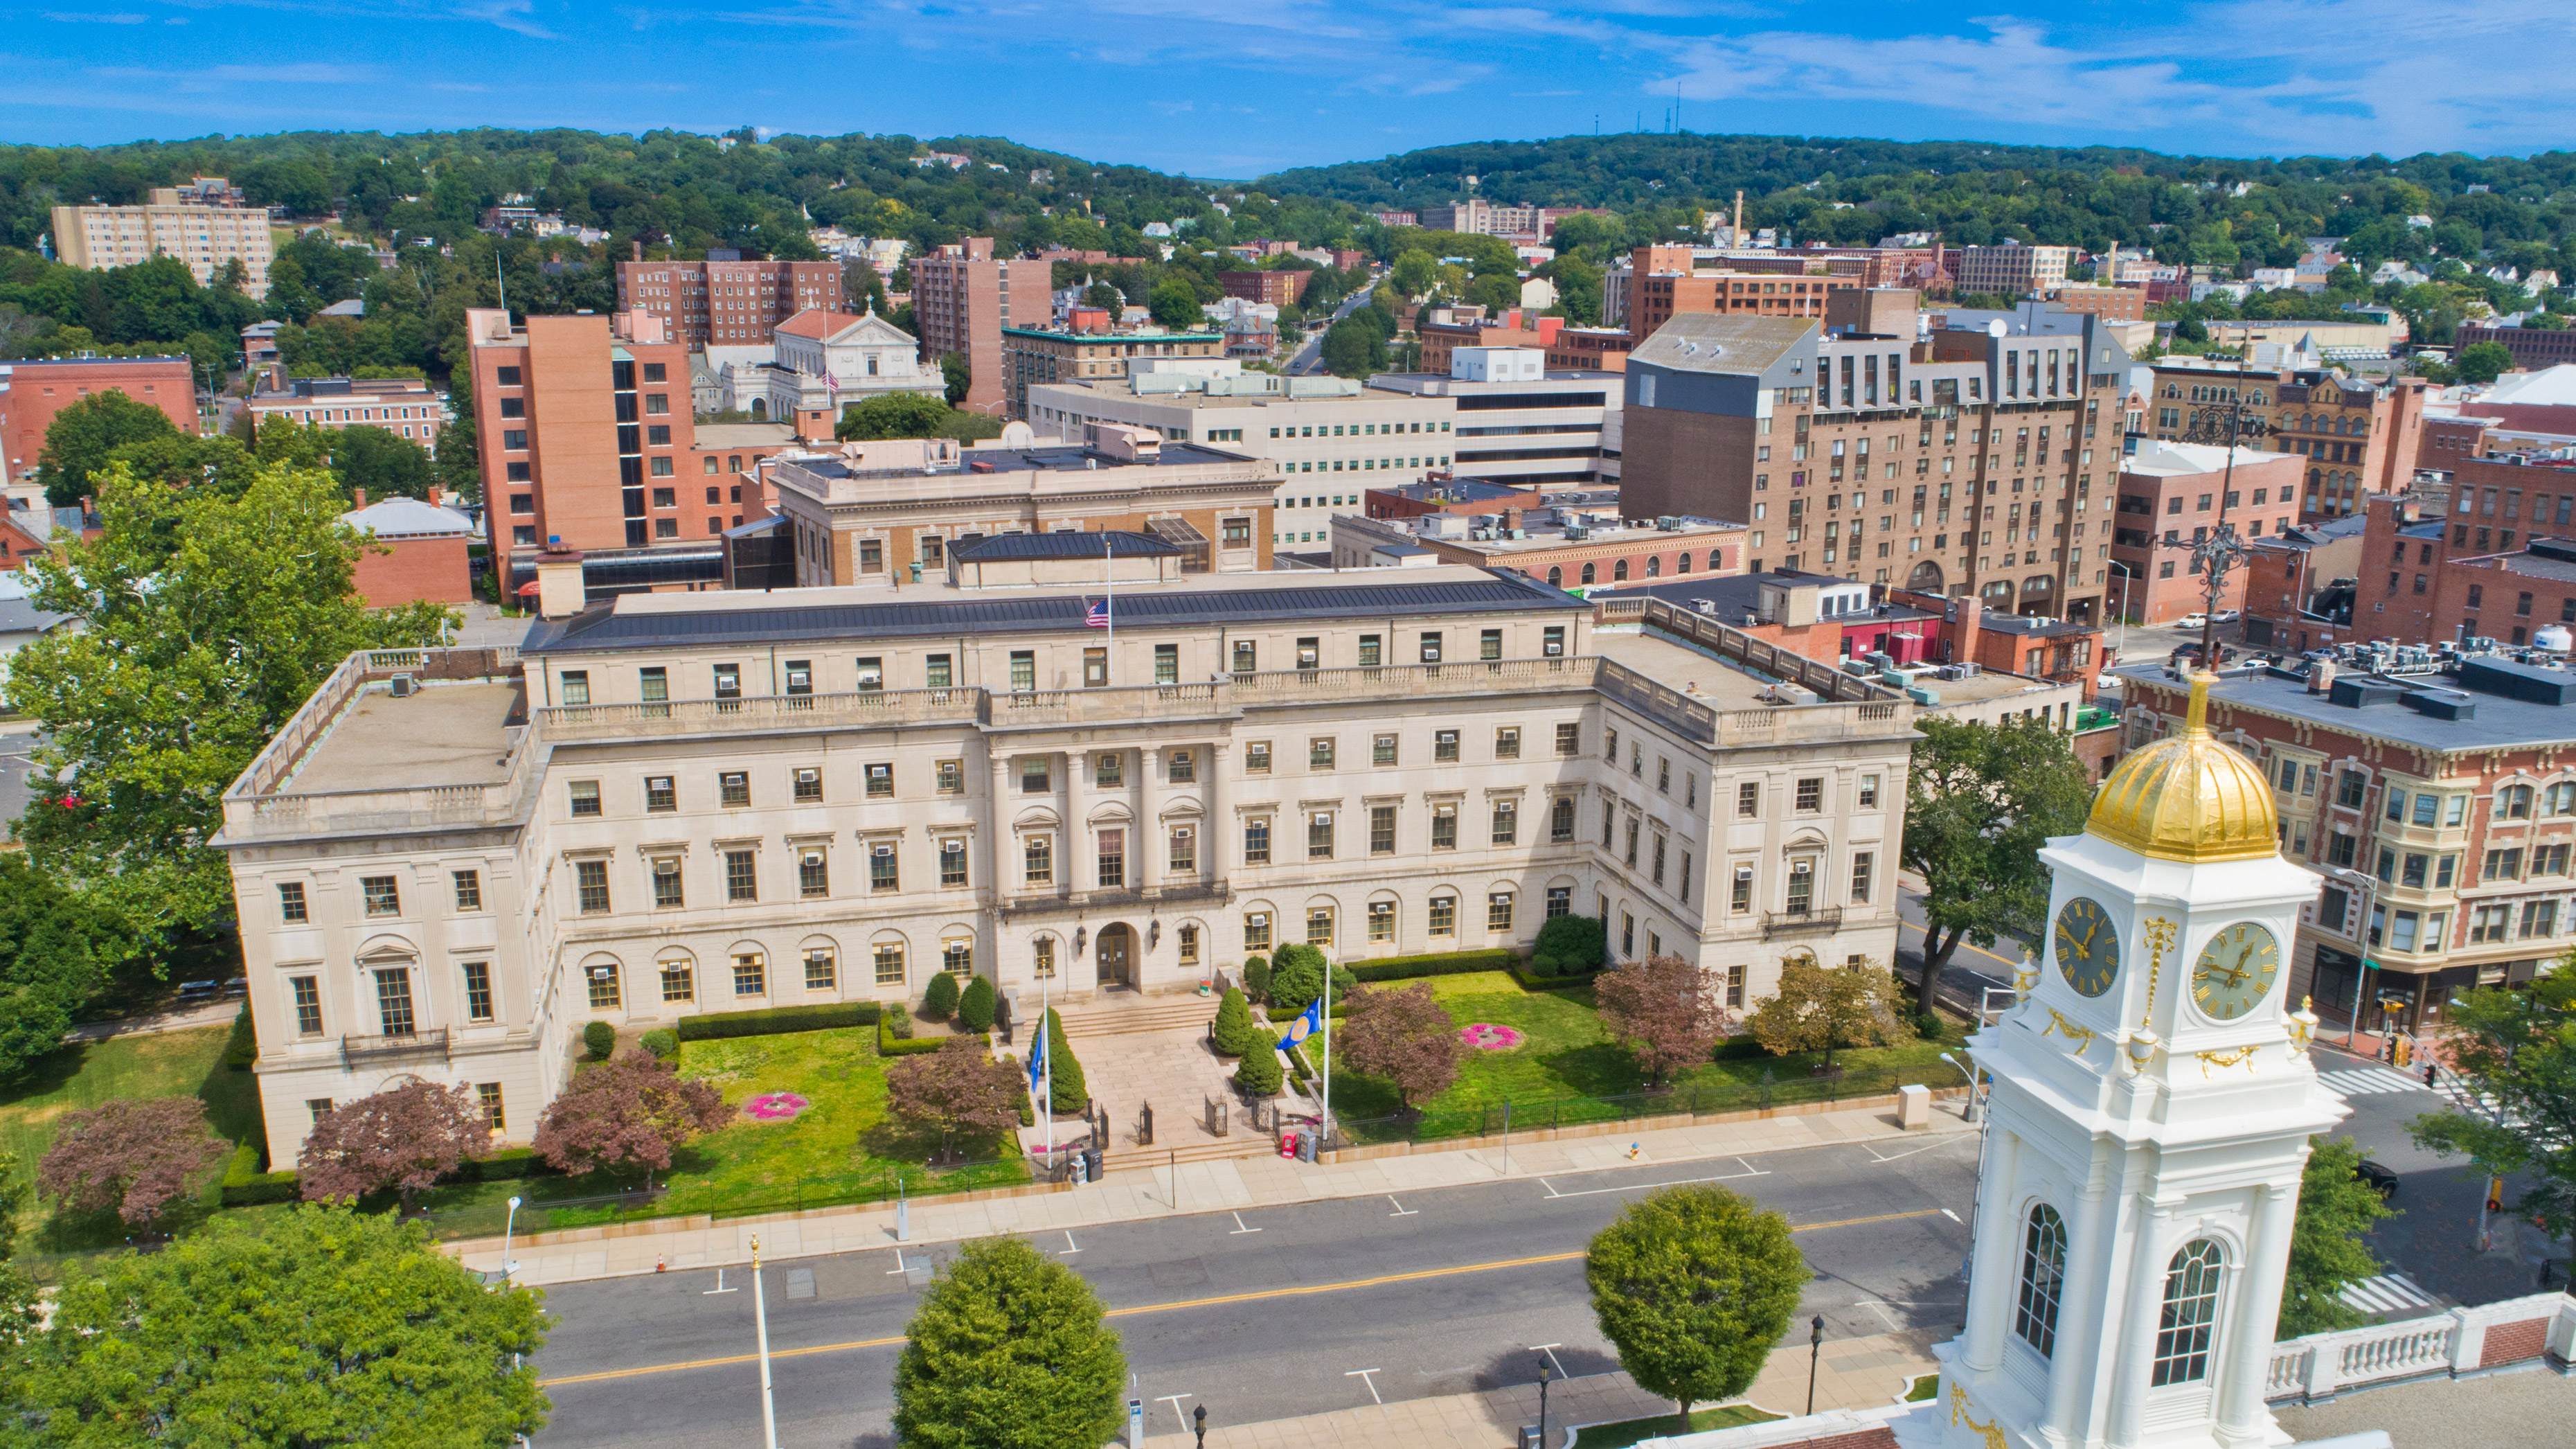 City Hall area of downtown Waterbury CT